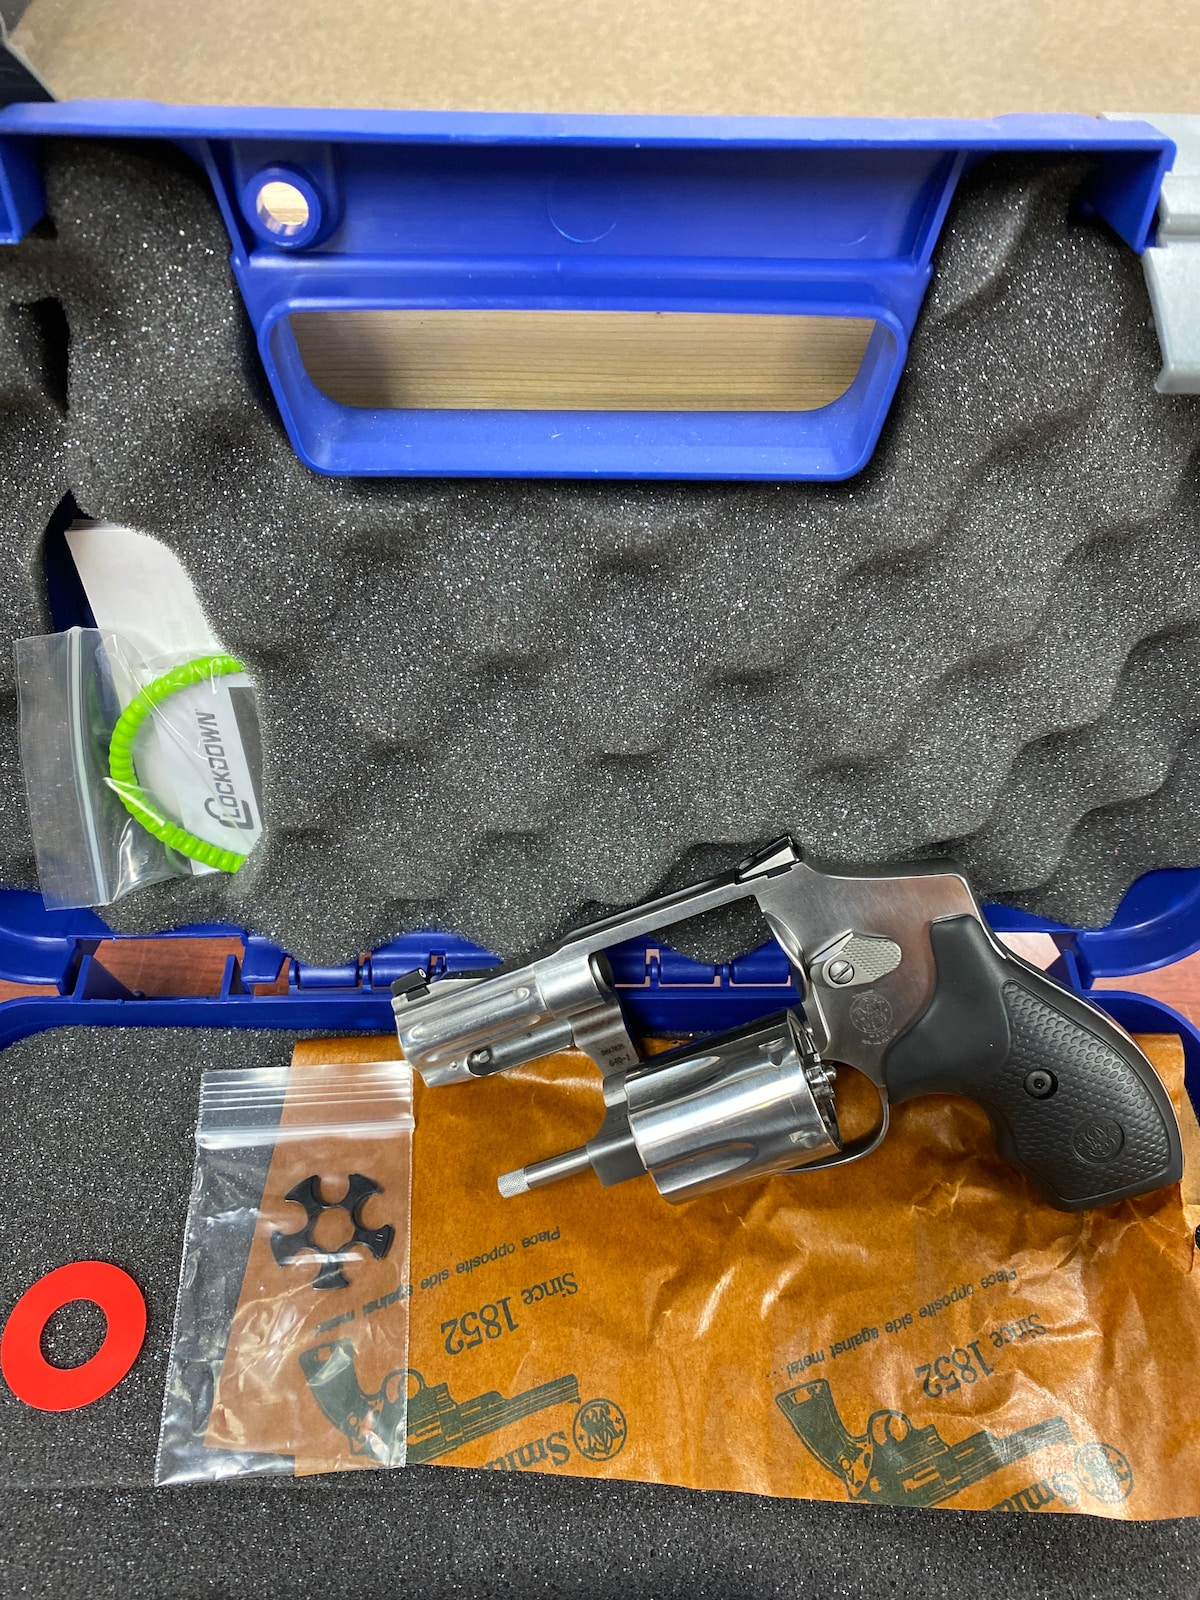 SMITH & WESSON 640-1 Pro Series 178044